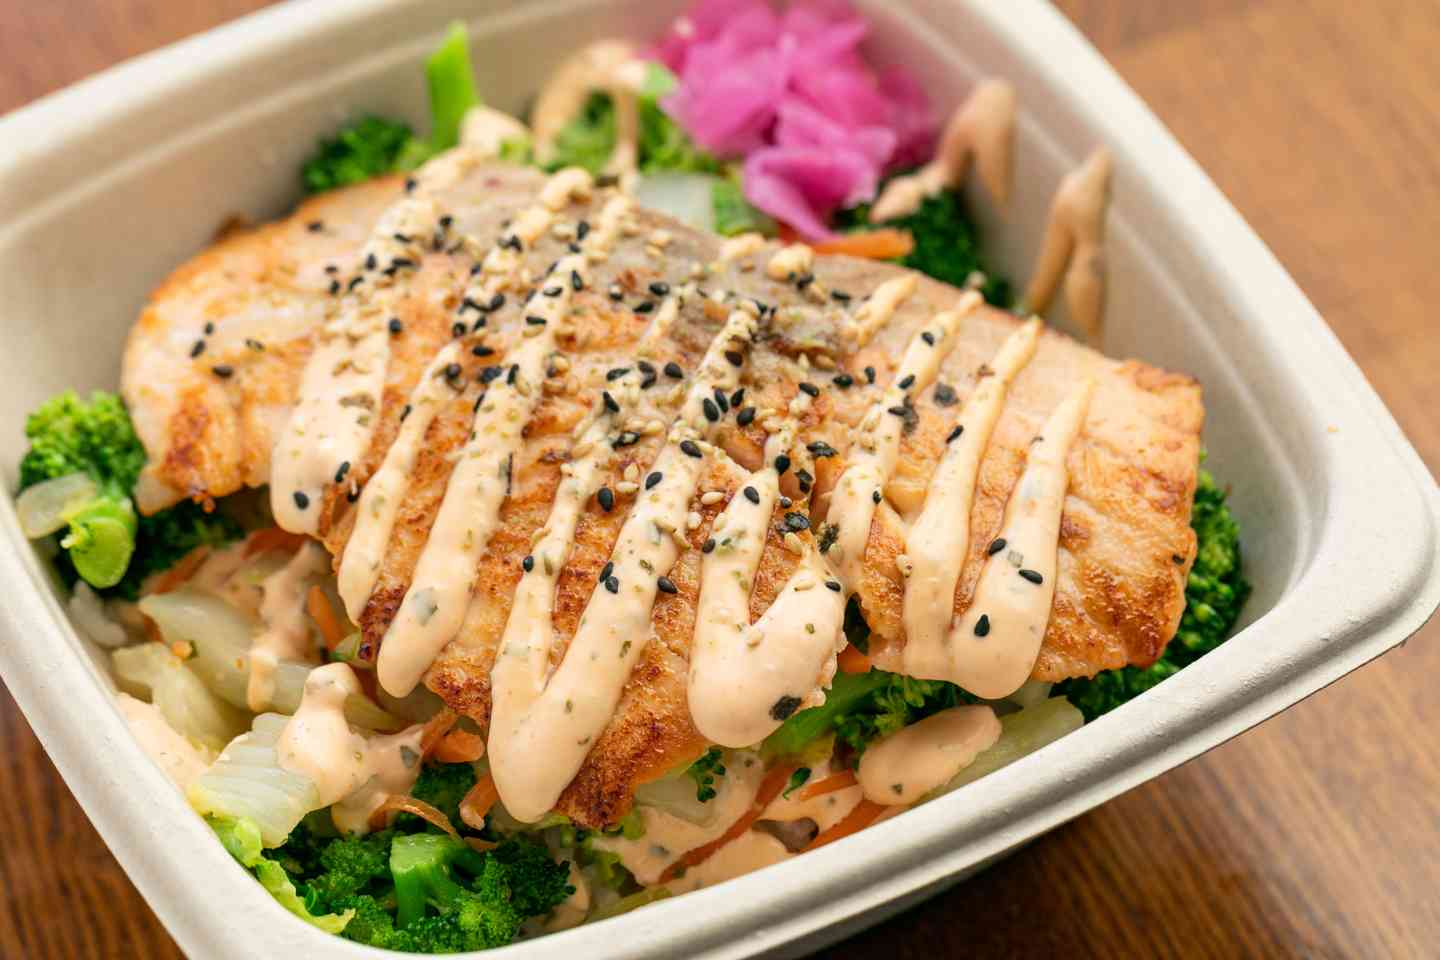 Miso Salmon with Spicy Mayo and Vegetables